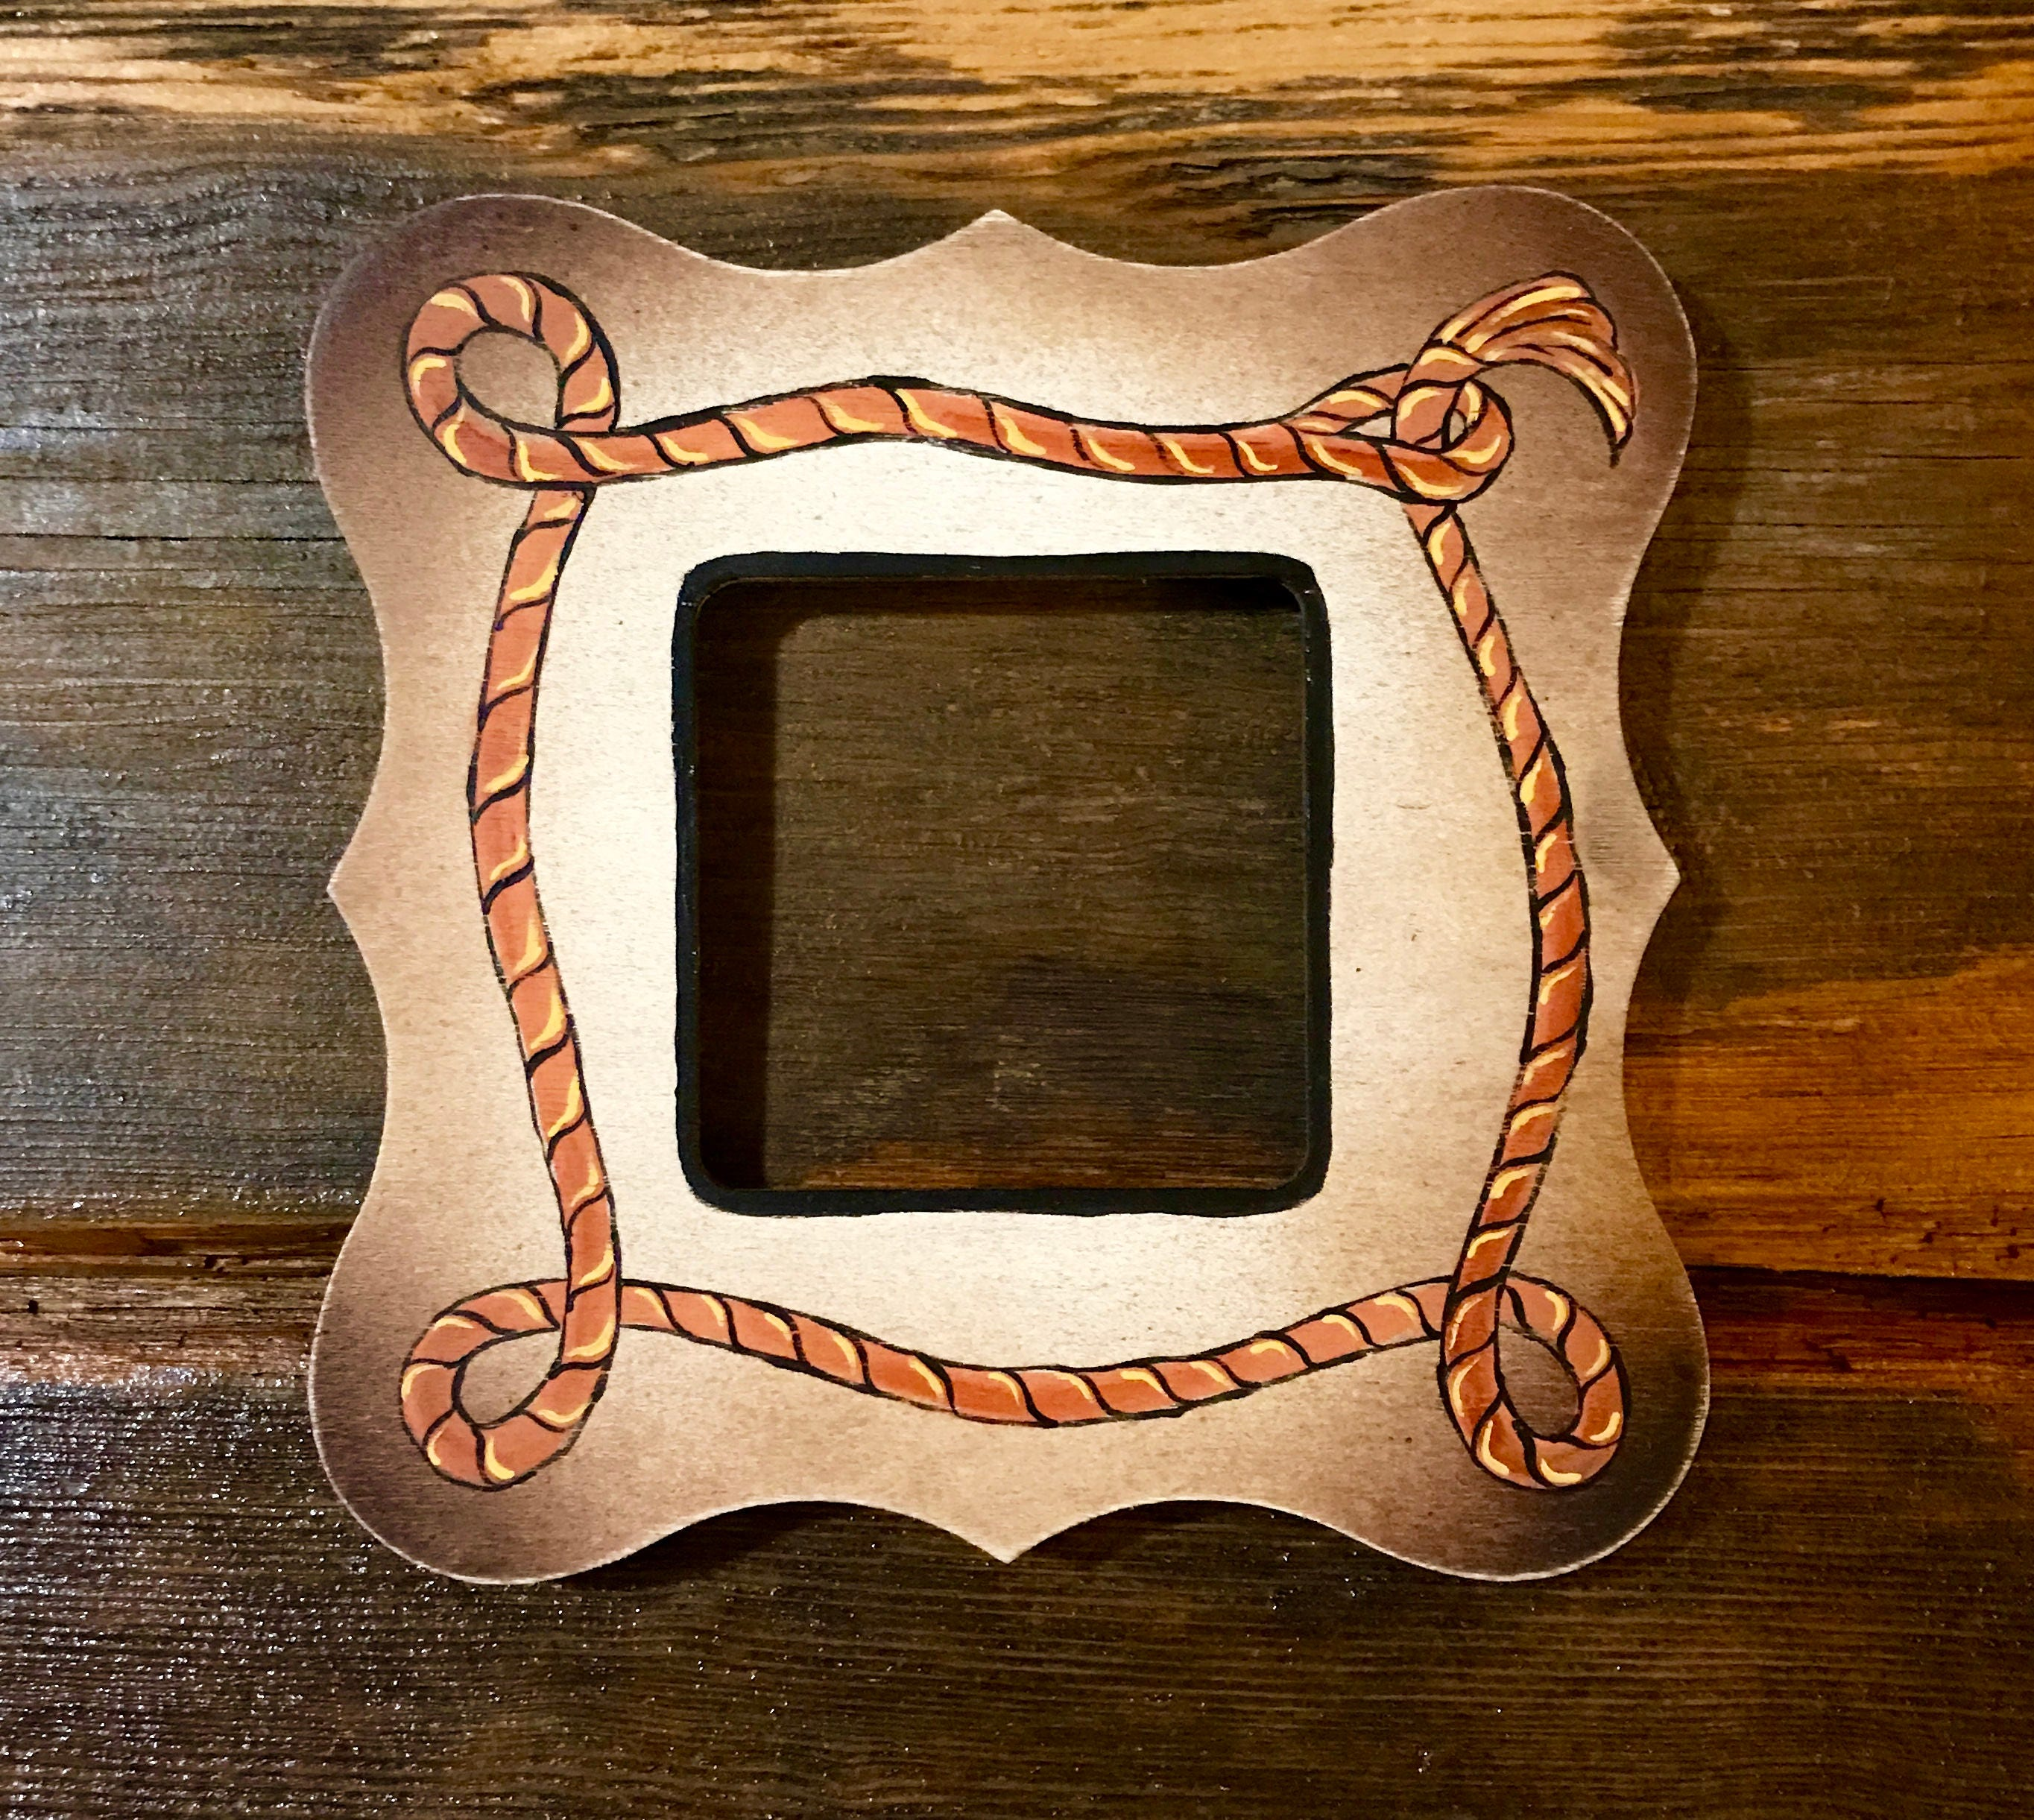 Western Decor Frames: Rustic, Western, Hand Painted, Small Wood Picture Frame